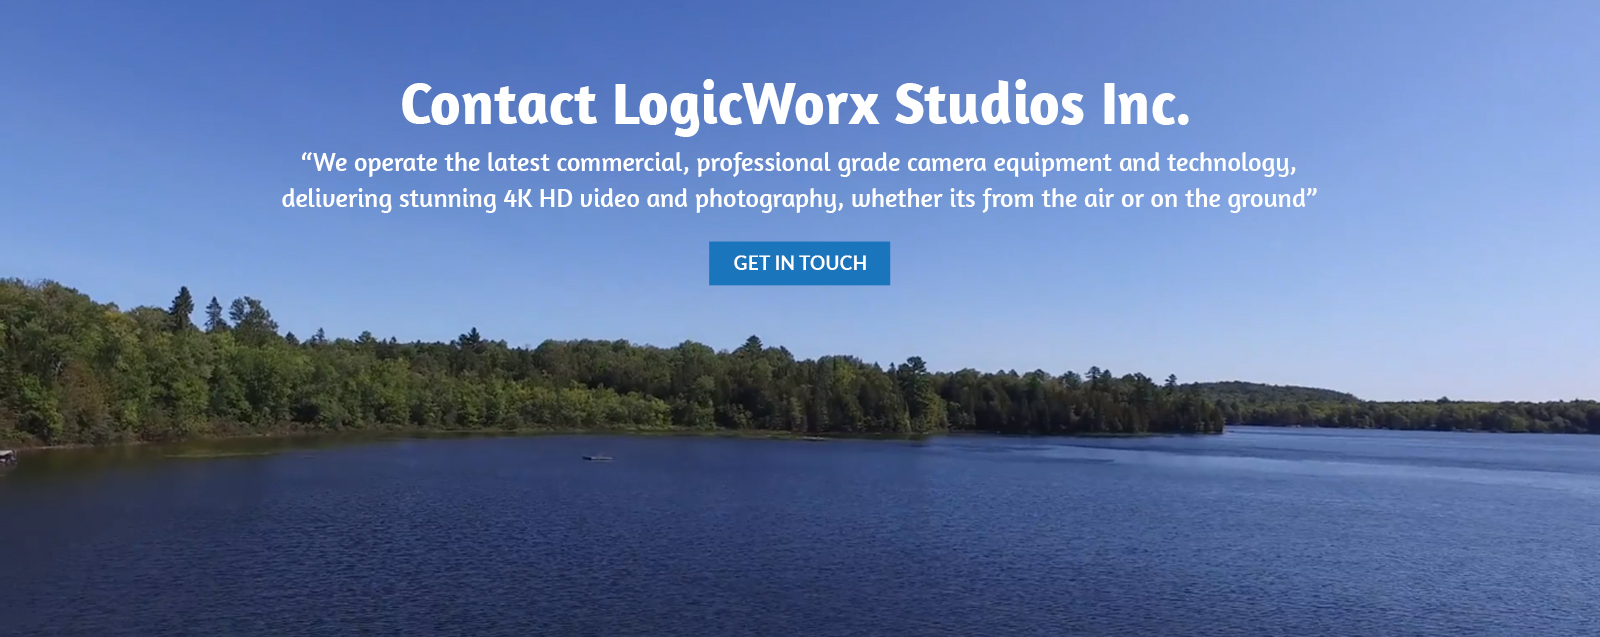 Contact LogicWorx Studios Inc. - Professional Video Production Services Oshawa